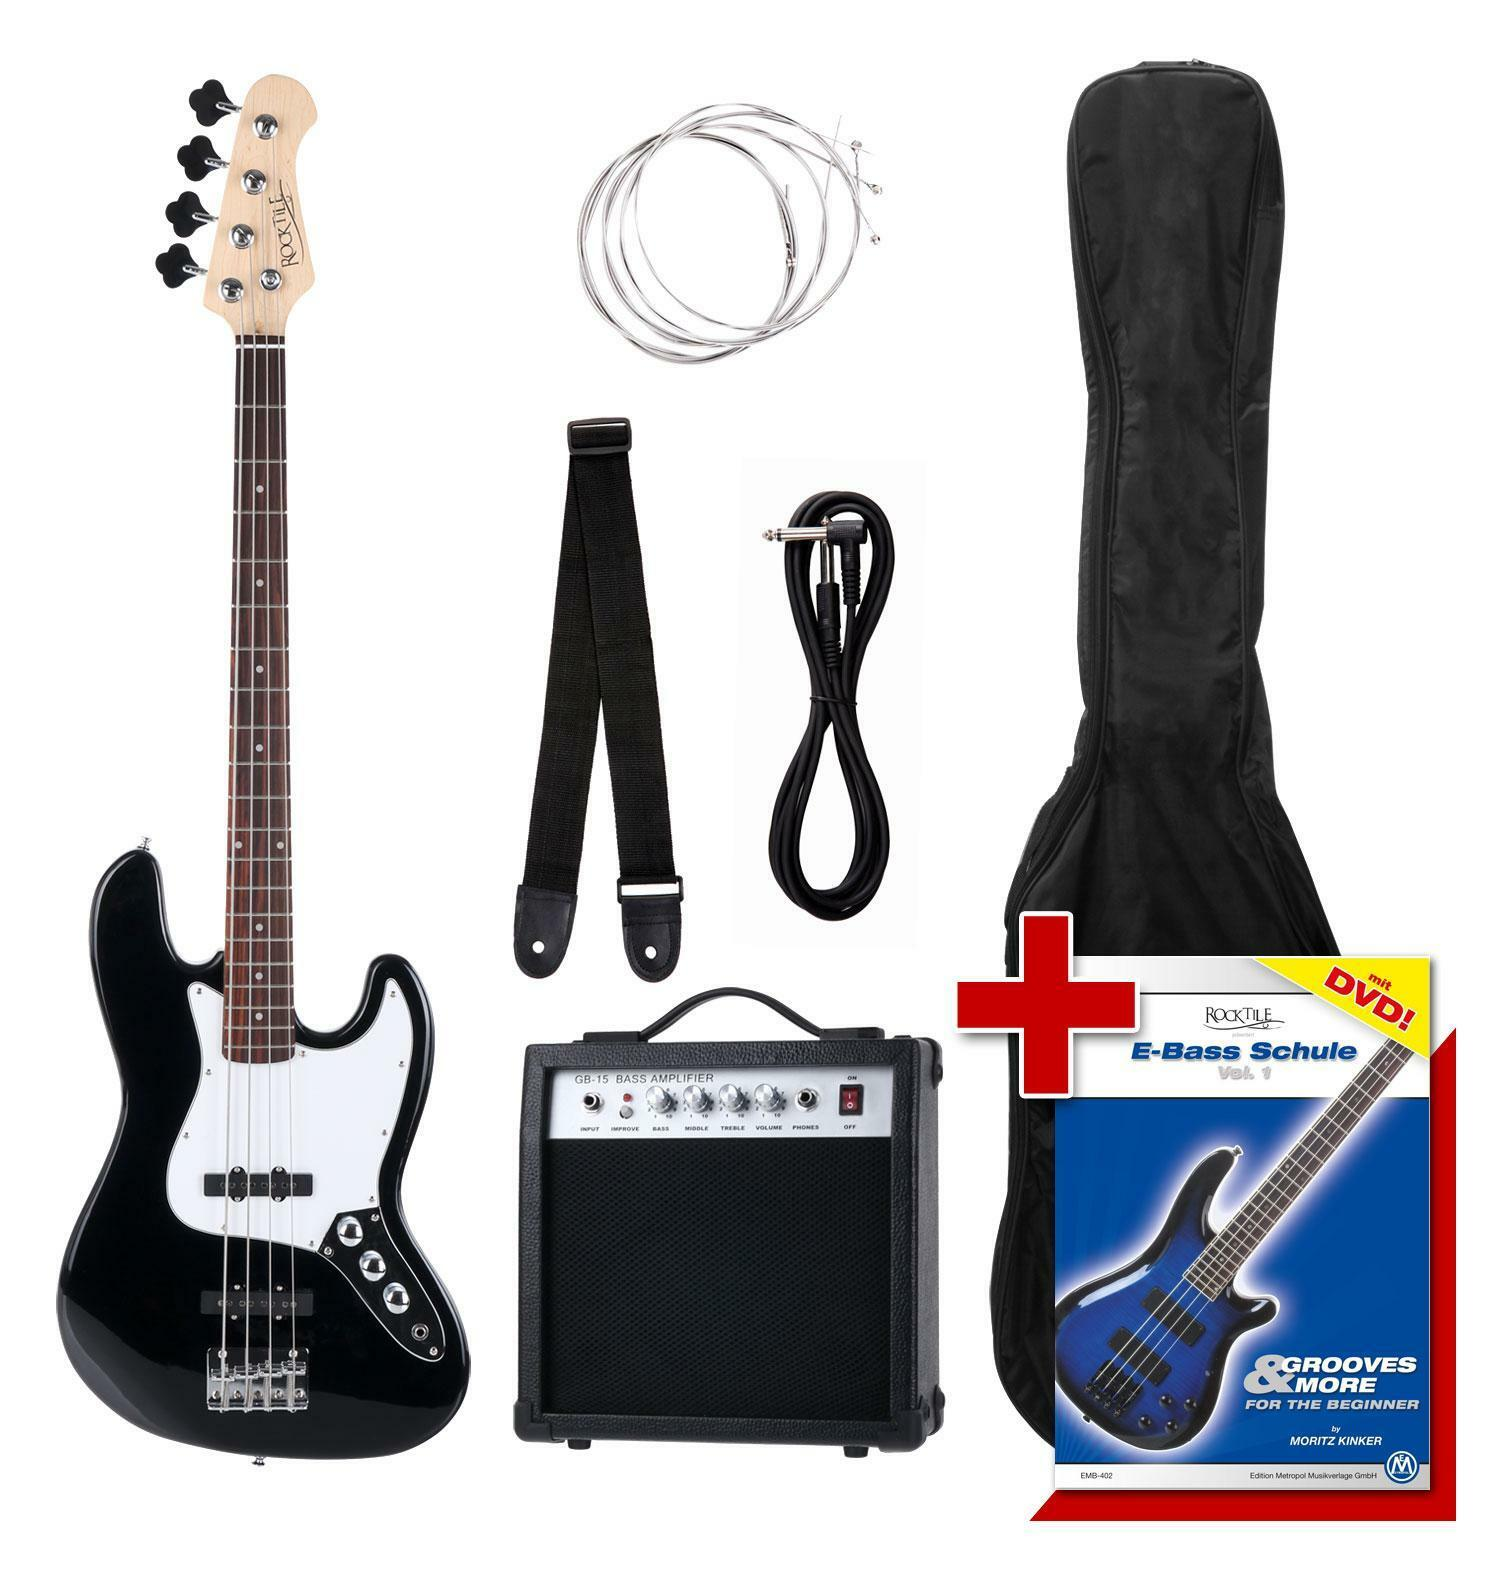 E-Bass E-Bass E-Bass set completamente Bass amp cinturón cable pajuela Bass guitarra 2 single-coils 7fd0d4